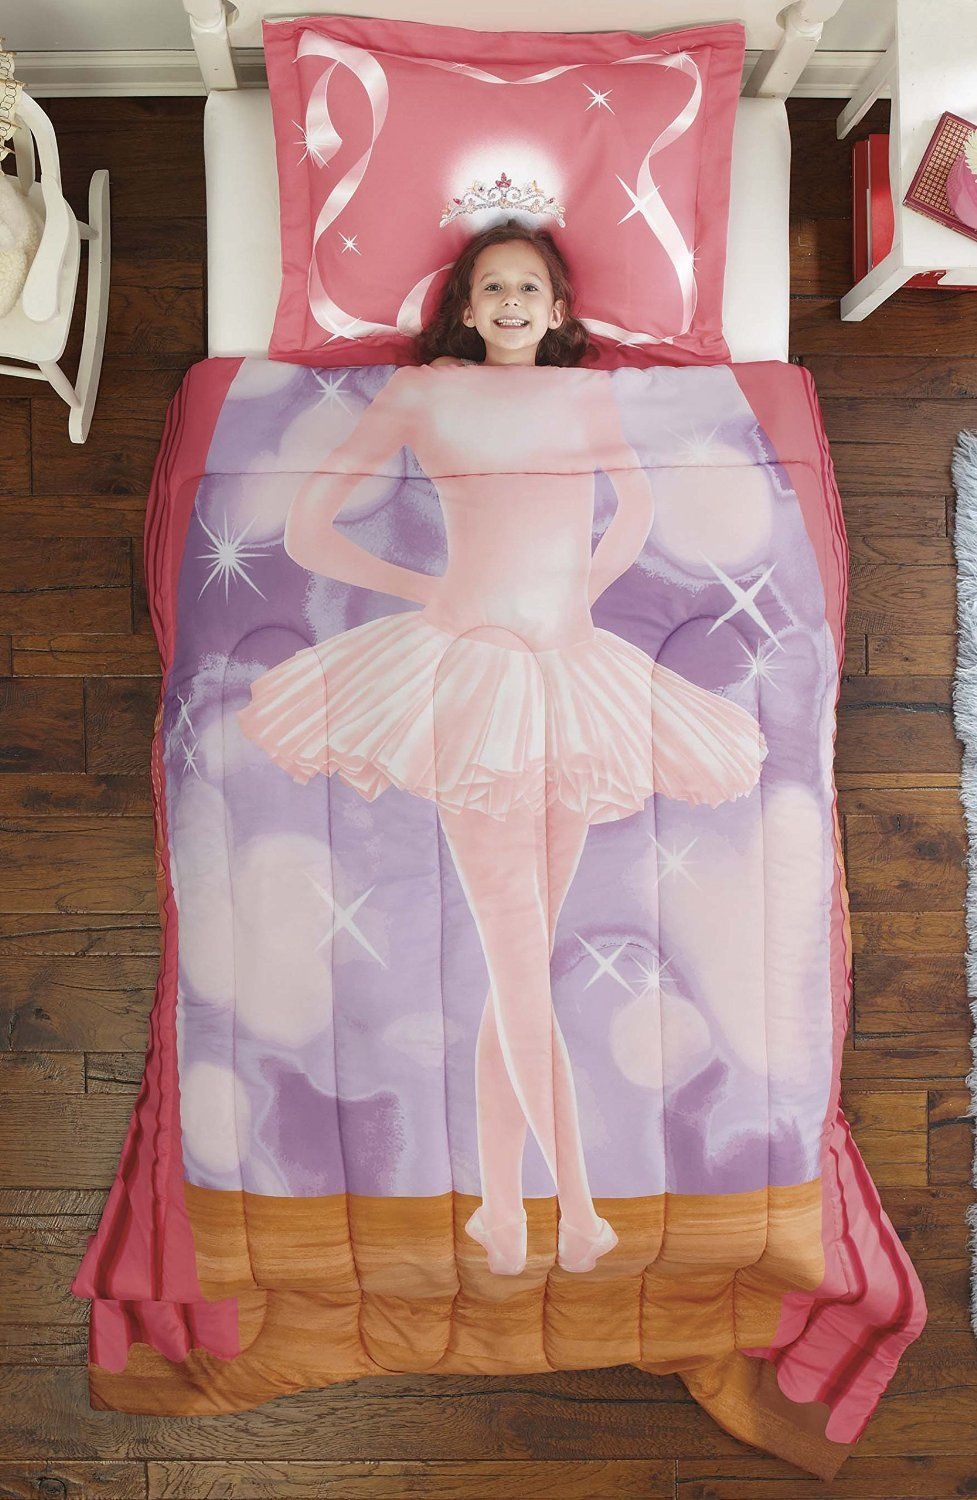 Twin Bed Hotel Room: 15 Amazing Bedding Sets As Gifts For Little Girl You Shall